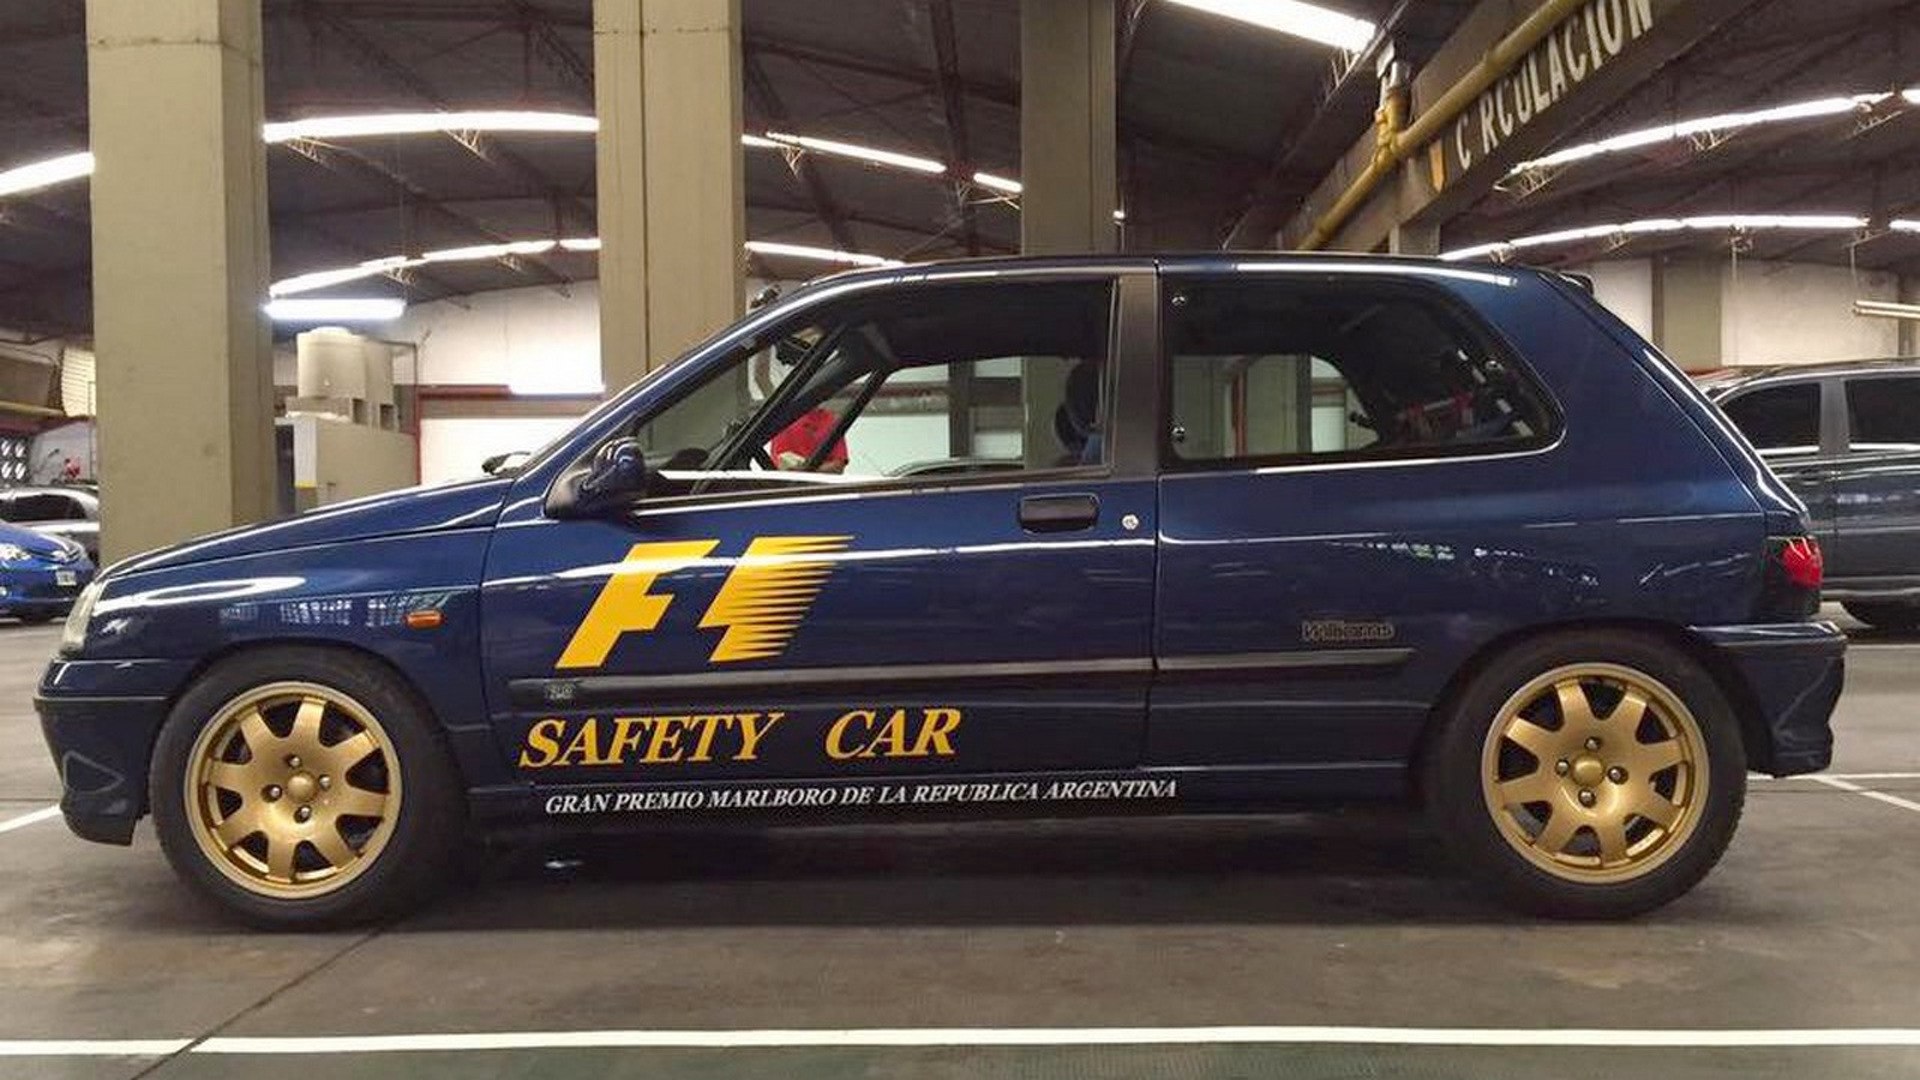 Renault Clio Williams, Safety Car Da F1 Argentina, Está à